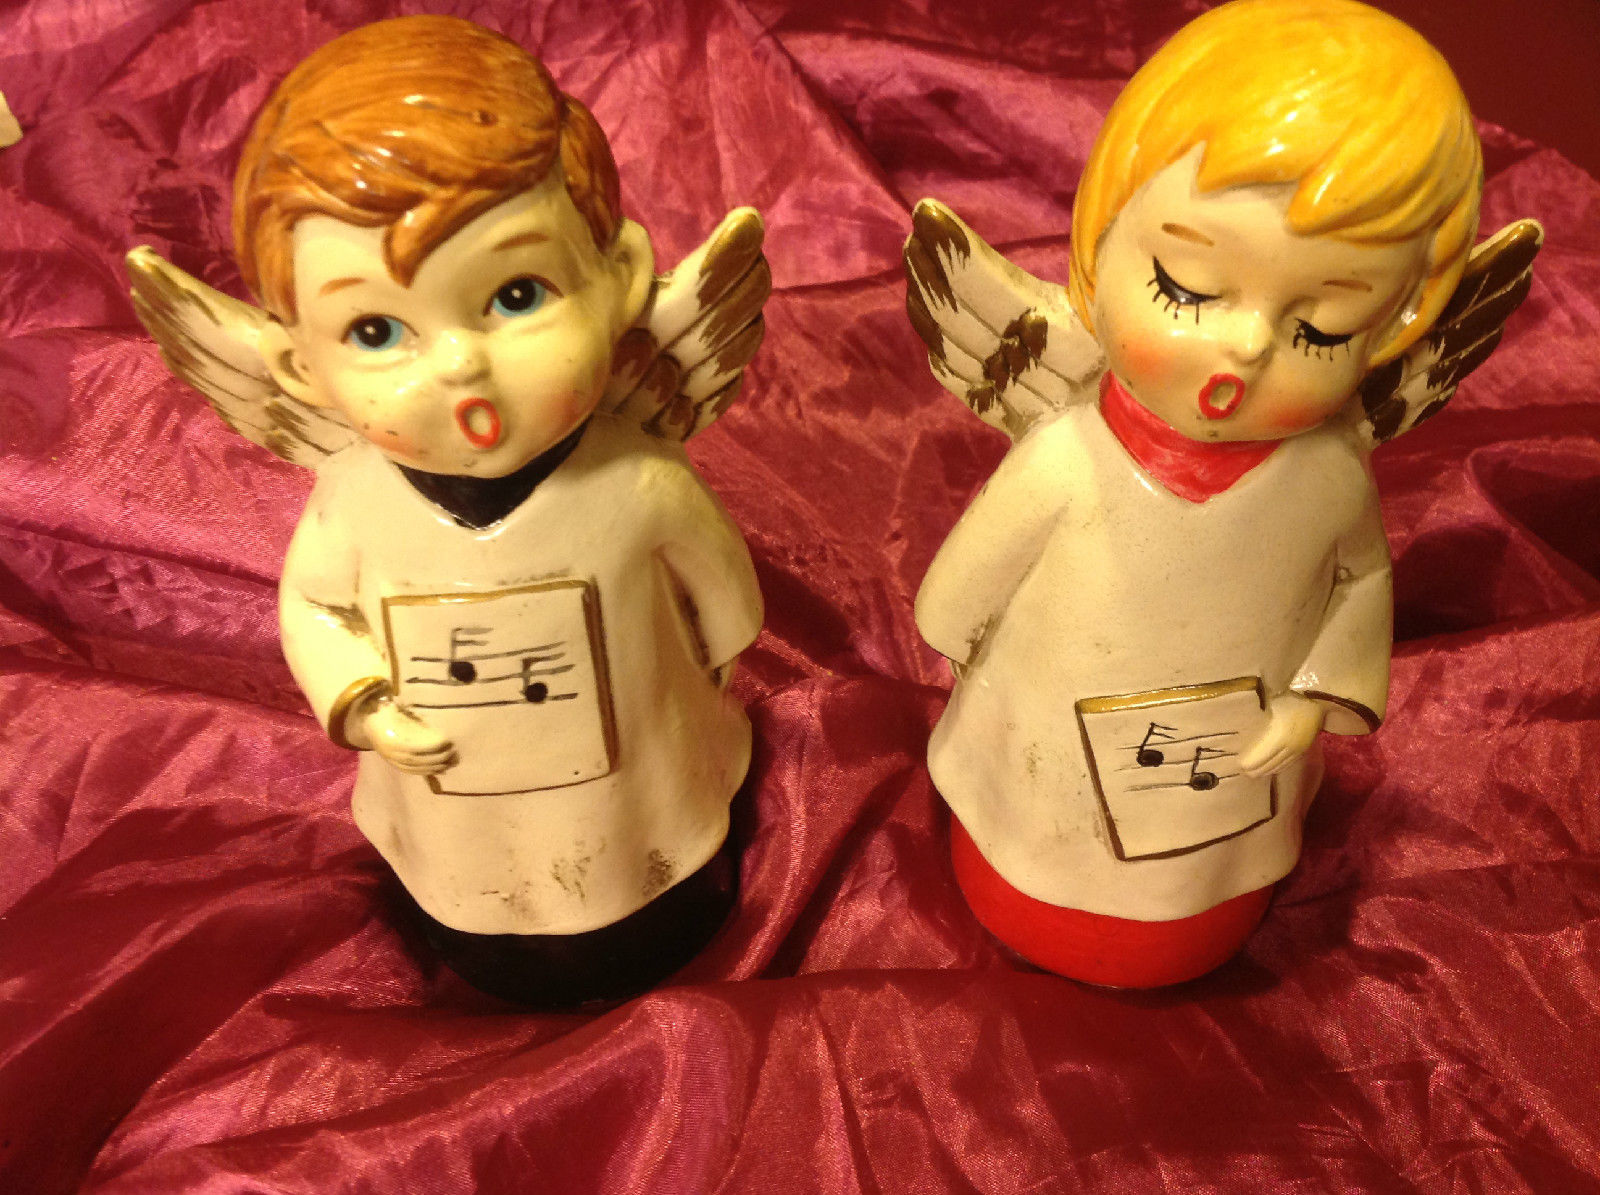 Set of 2 angels 7 inches salt and pepper shakers vintage from estate